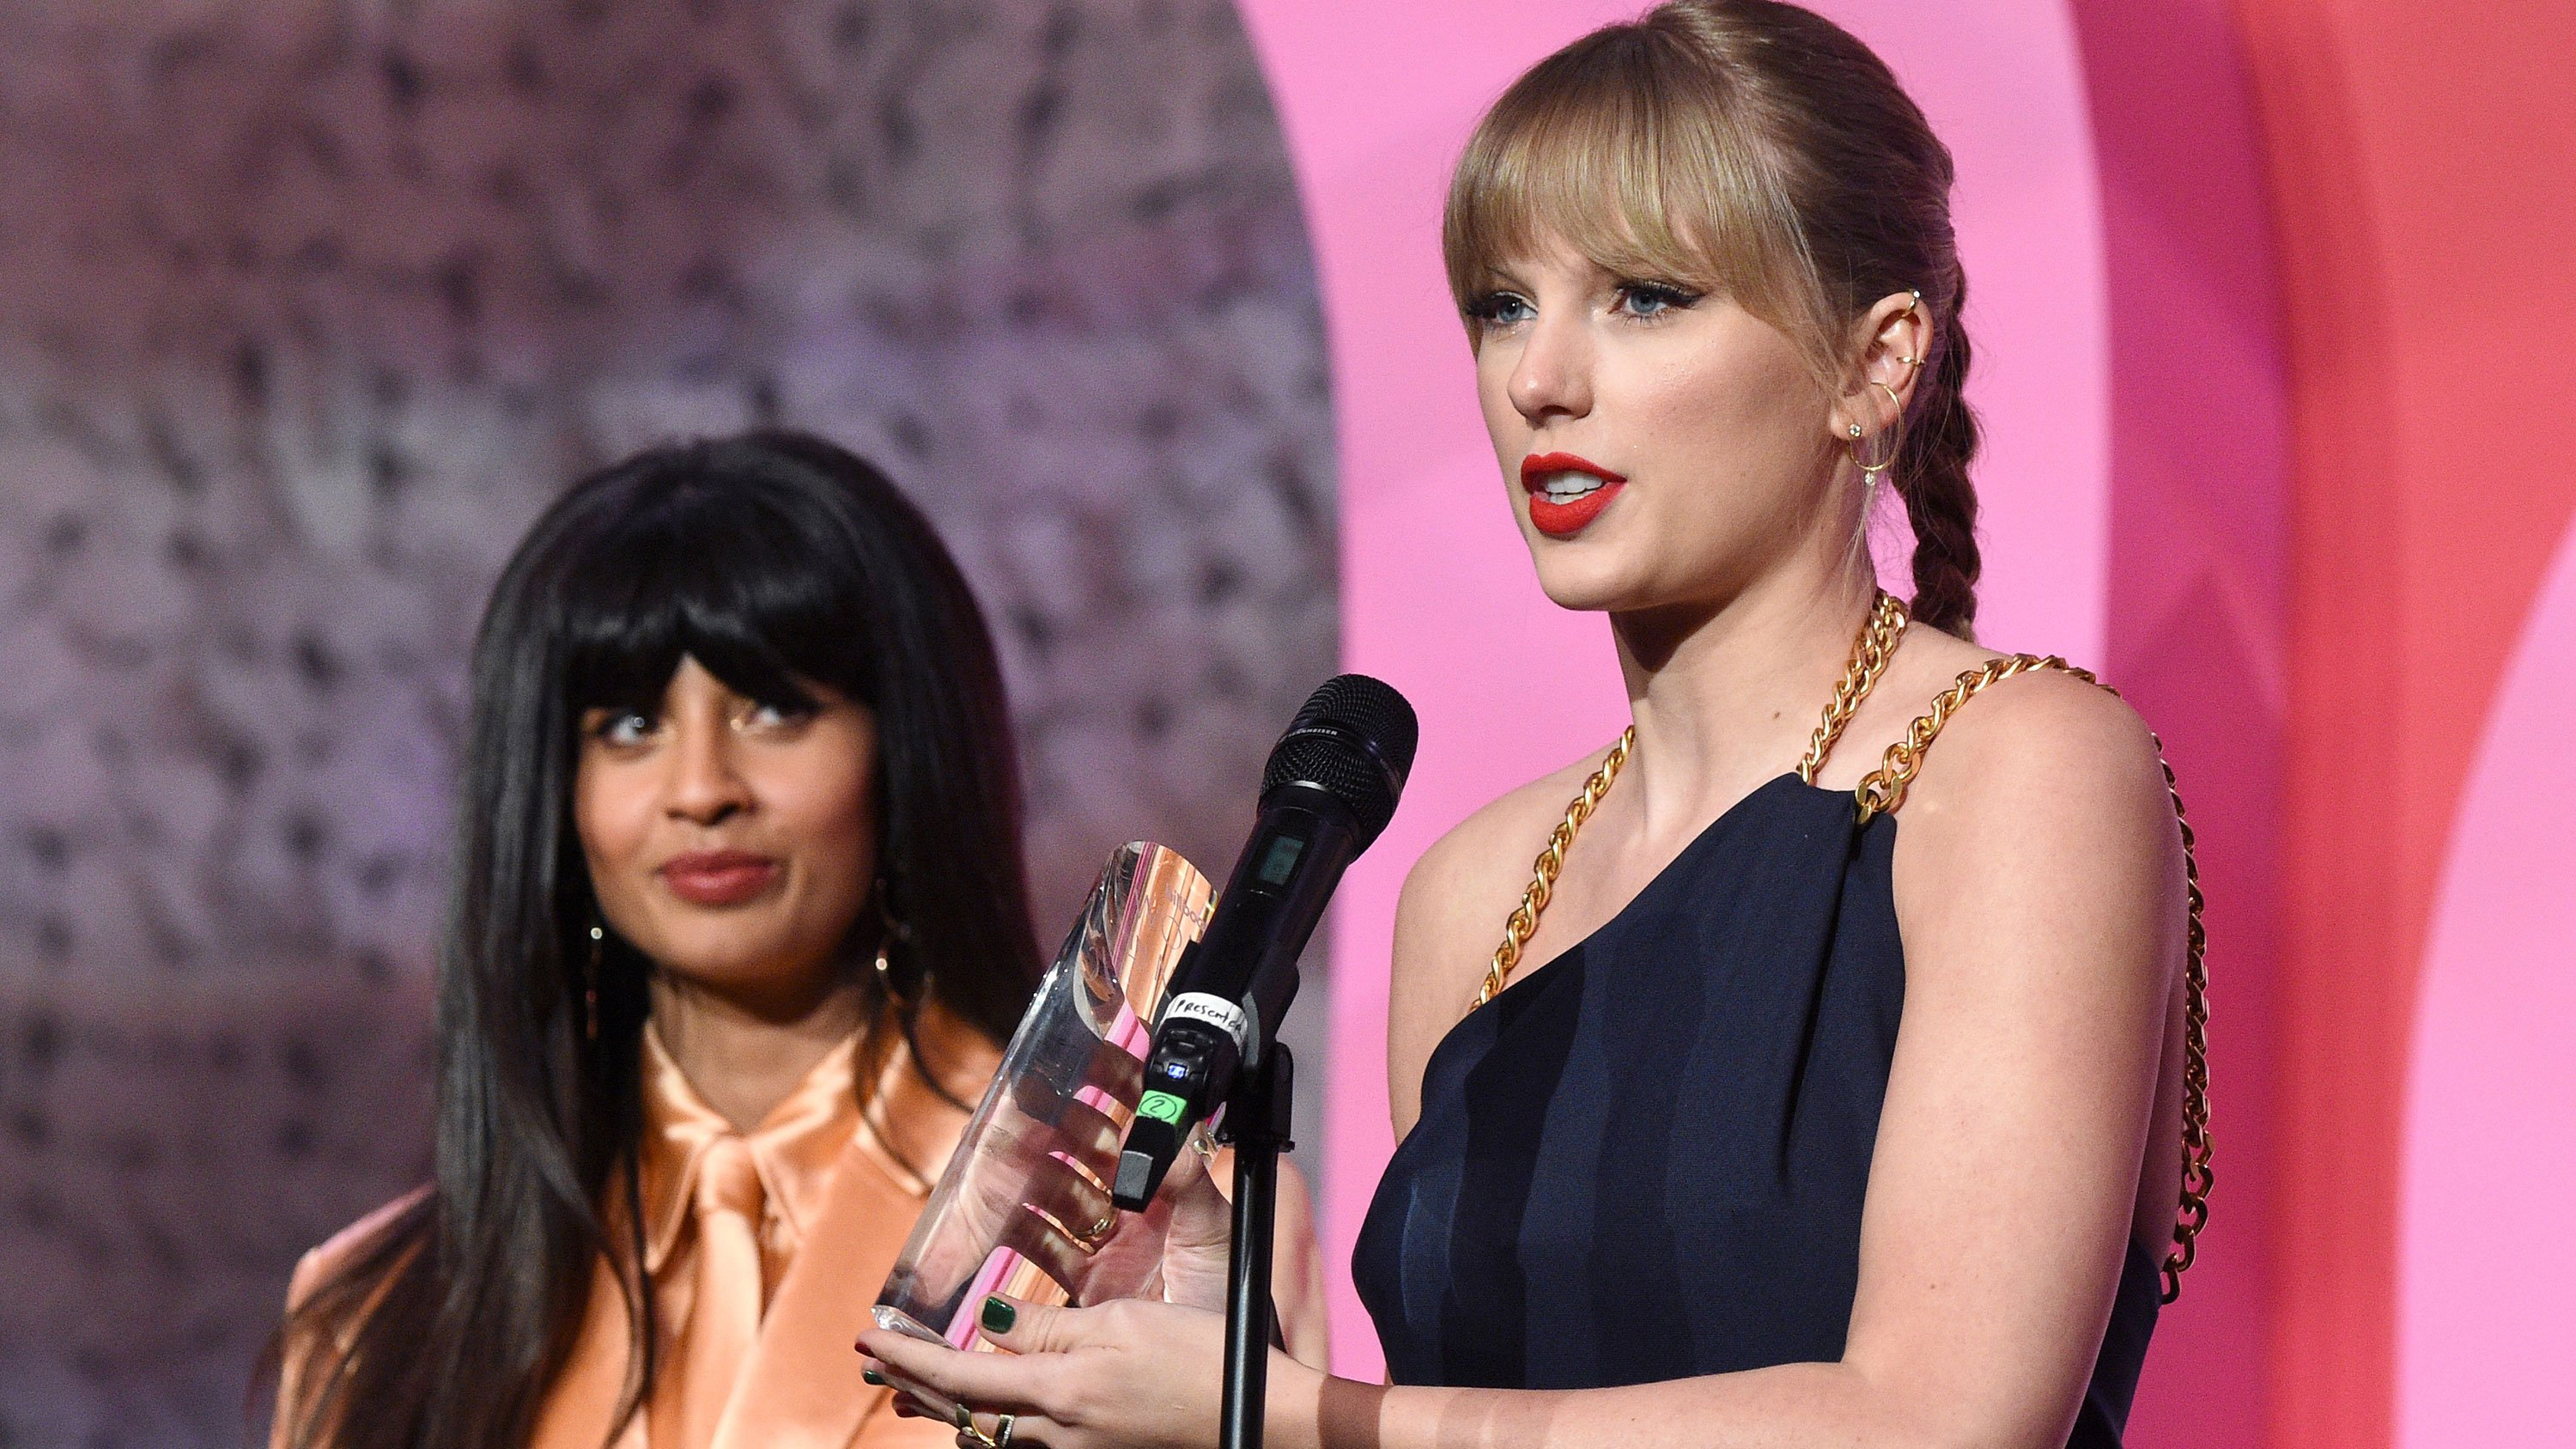 Taylor Swift honors women and slams Scooter Braun in Woman of the Decade speech